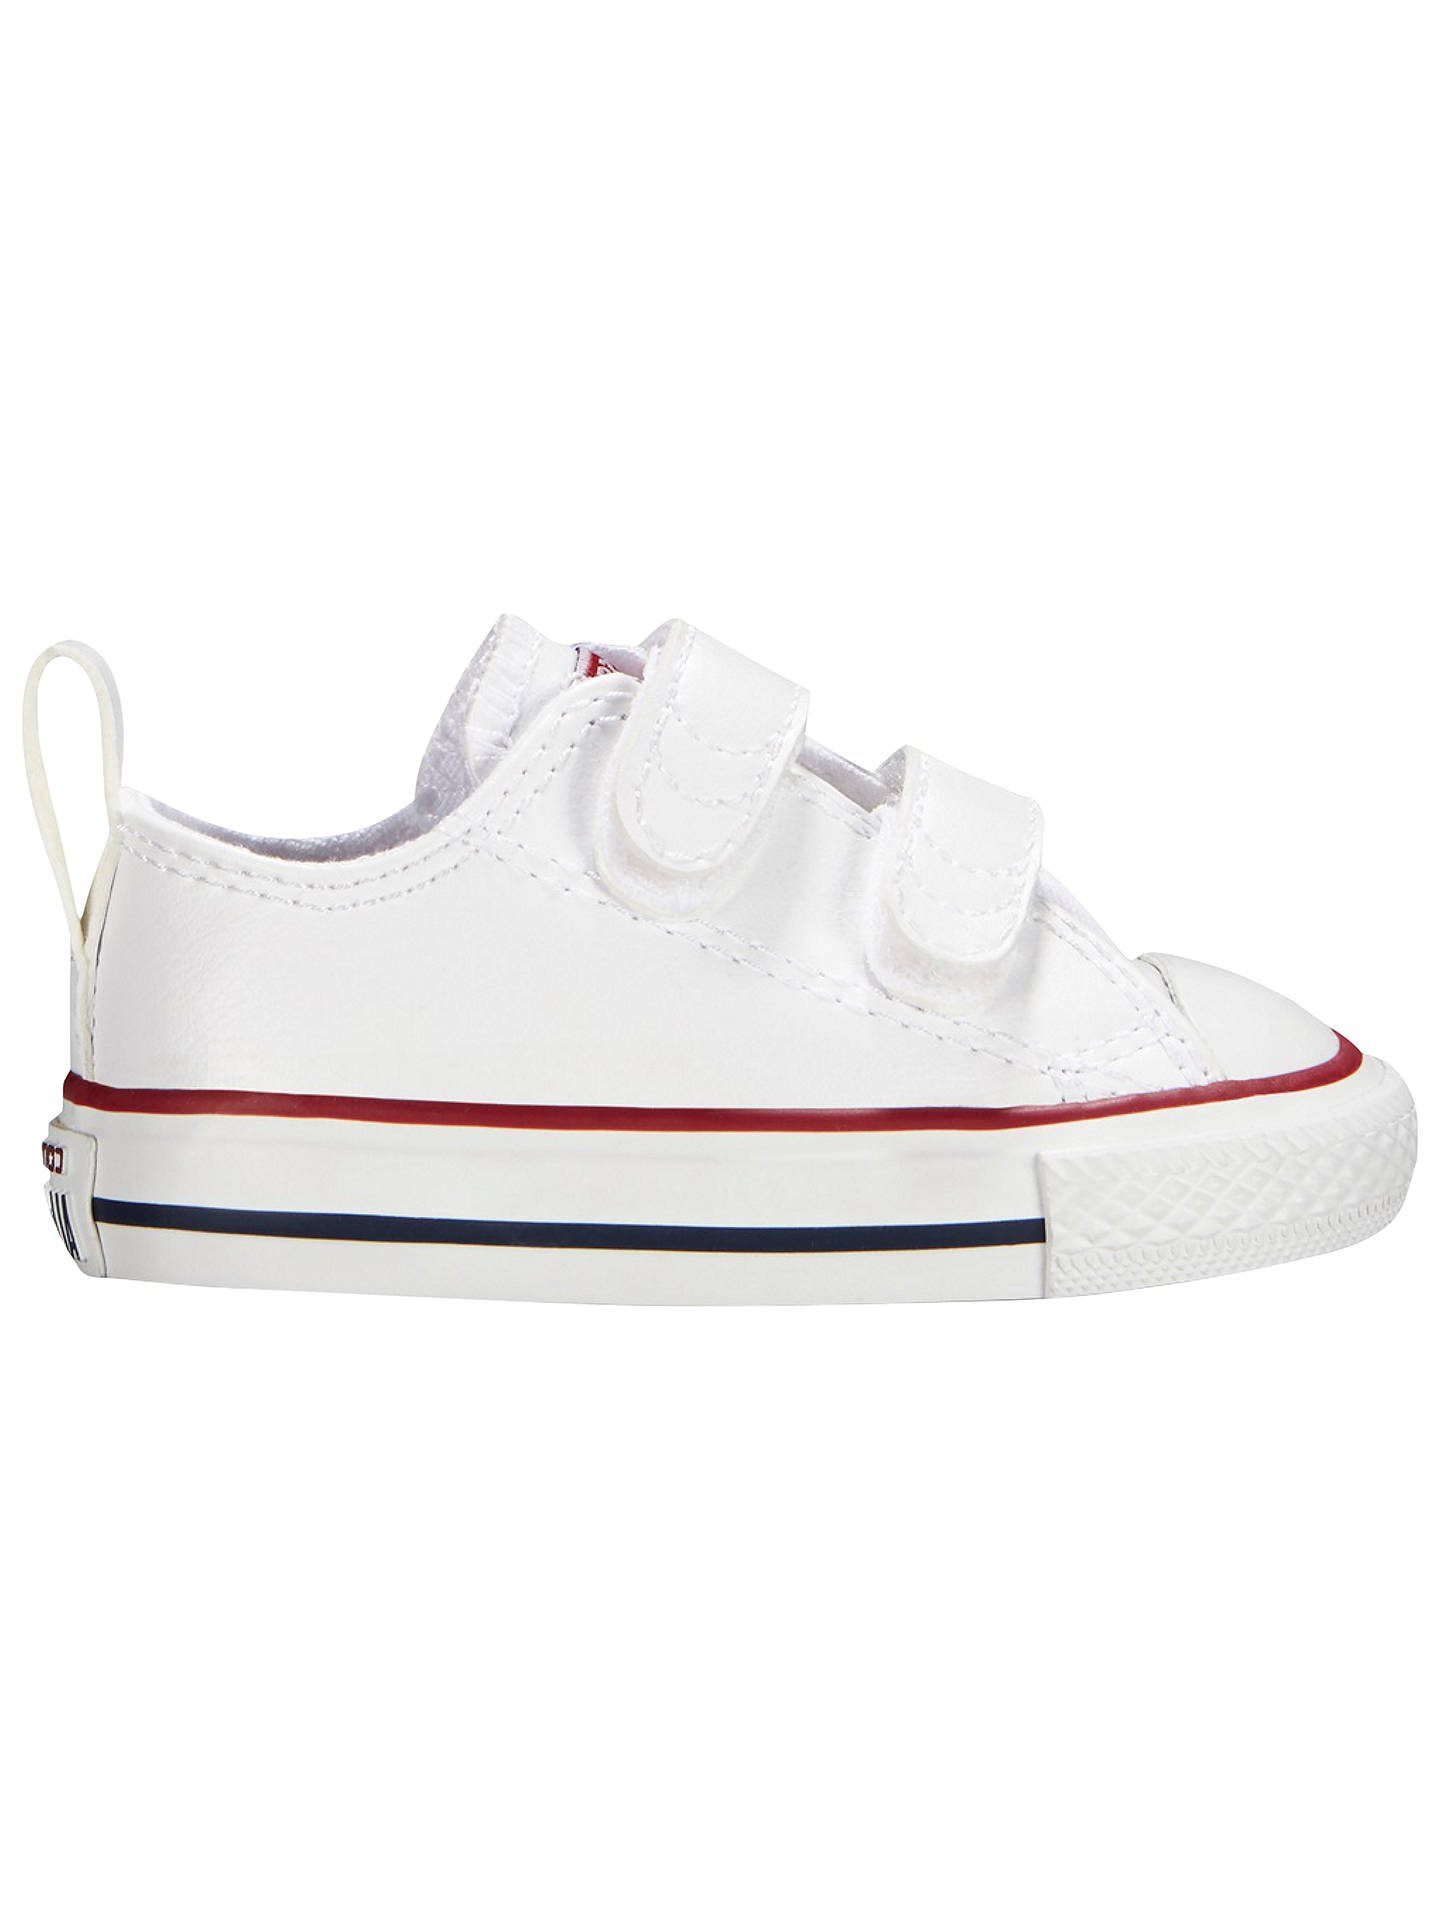 c19a587db57c Buy Converse Children s Chuck Taylor All Star 2V Rip-Tape Shoes